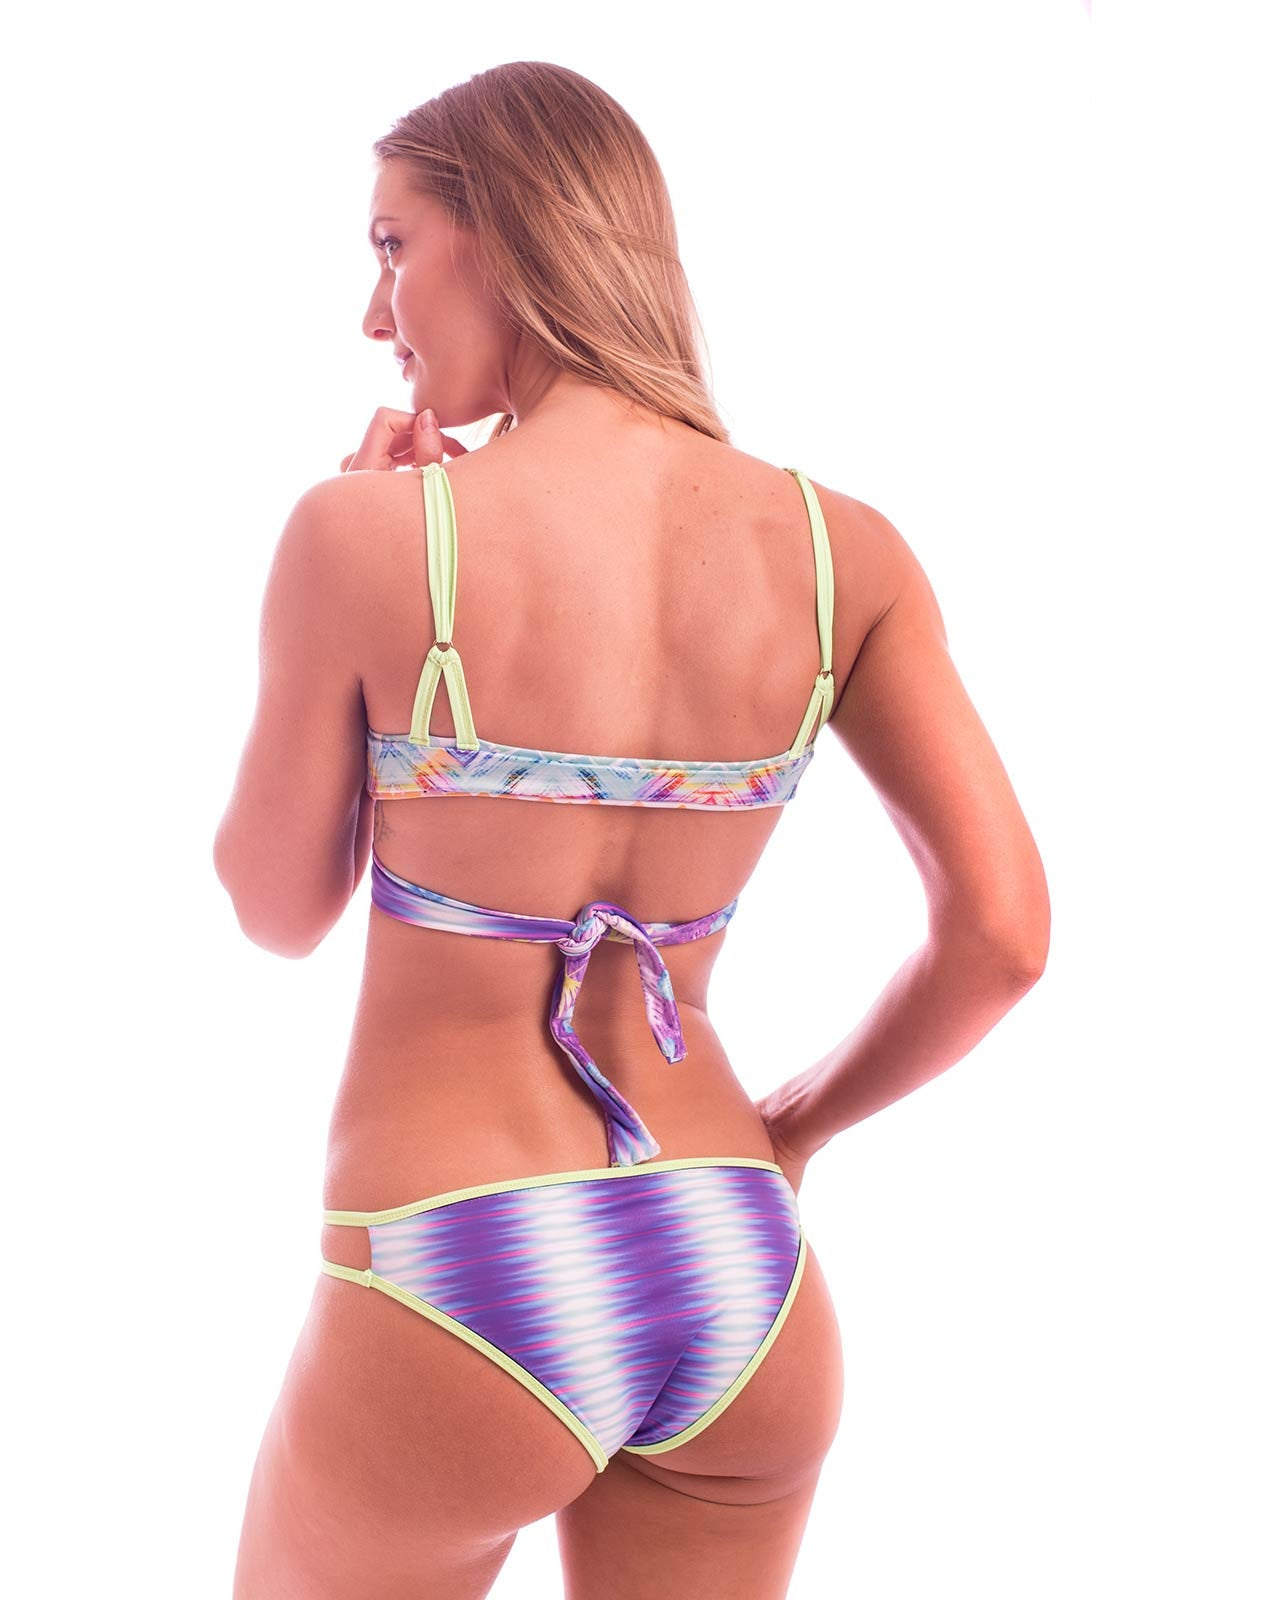 GRAPEFUL TOPIARY BIKINI